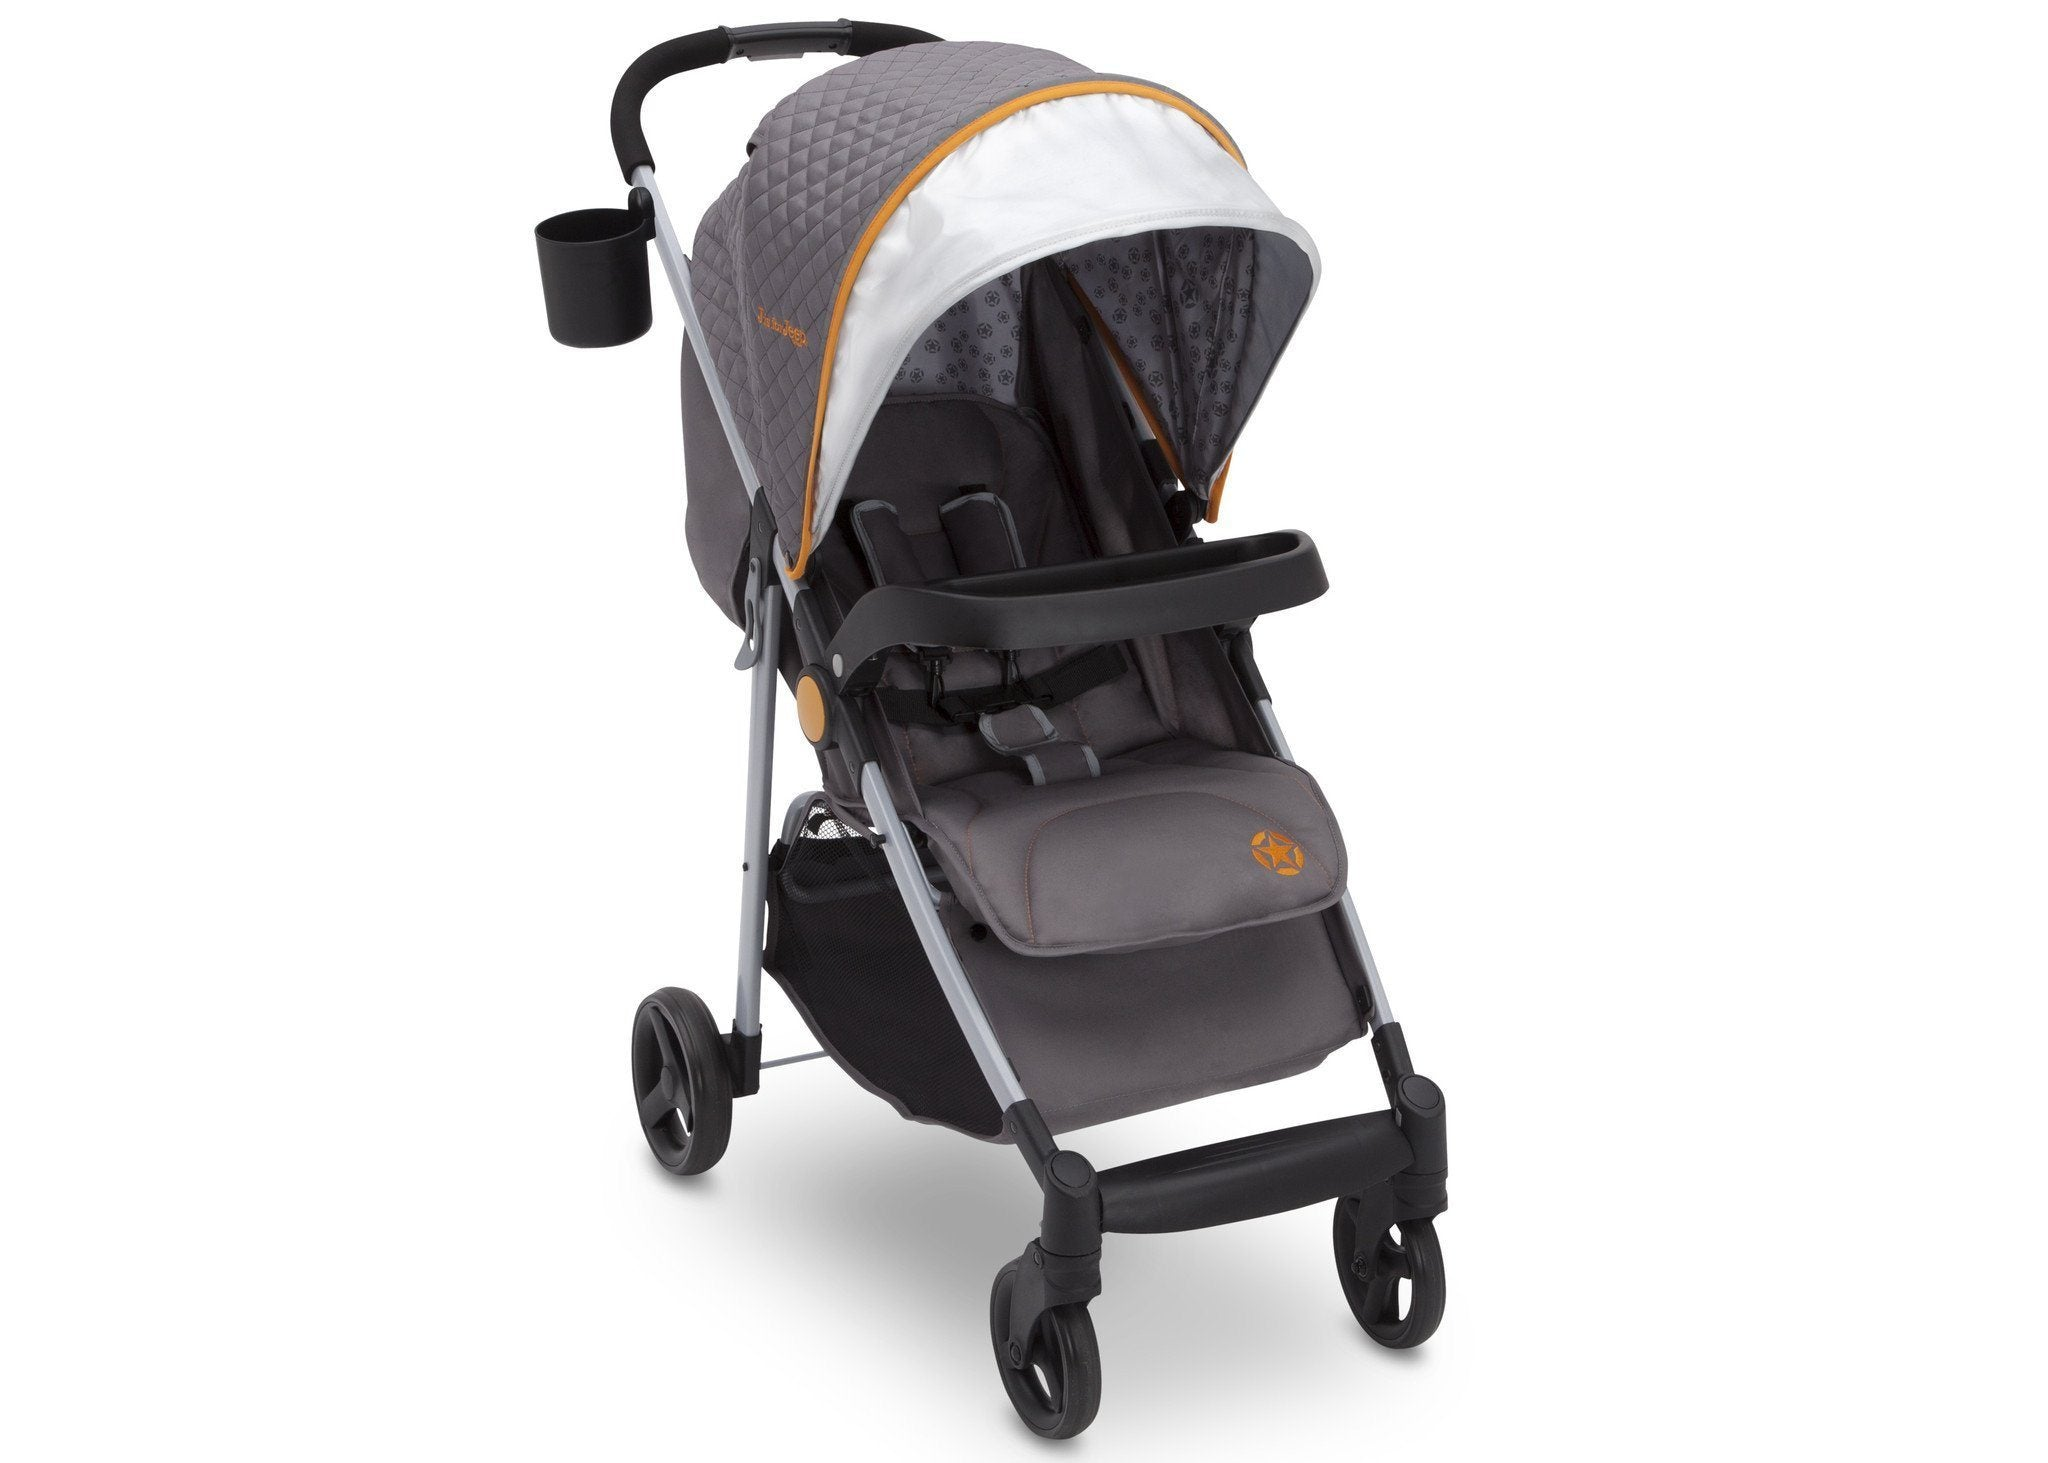 Delta Children J is for Jeep Brand Metro Plus Stroller, Galaxy (850) with cup holder, Right Side View, a2a